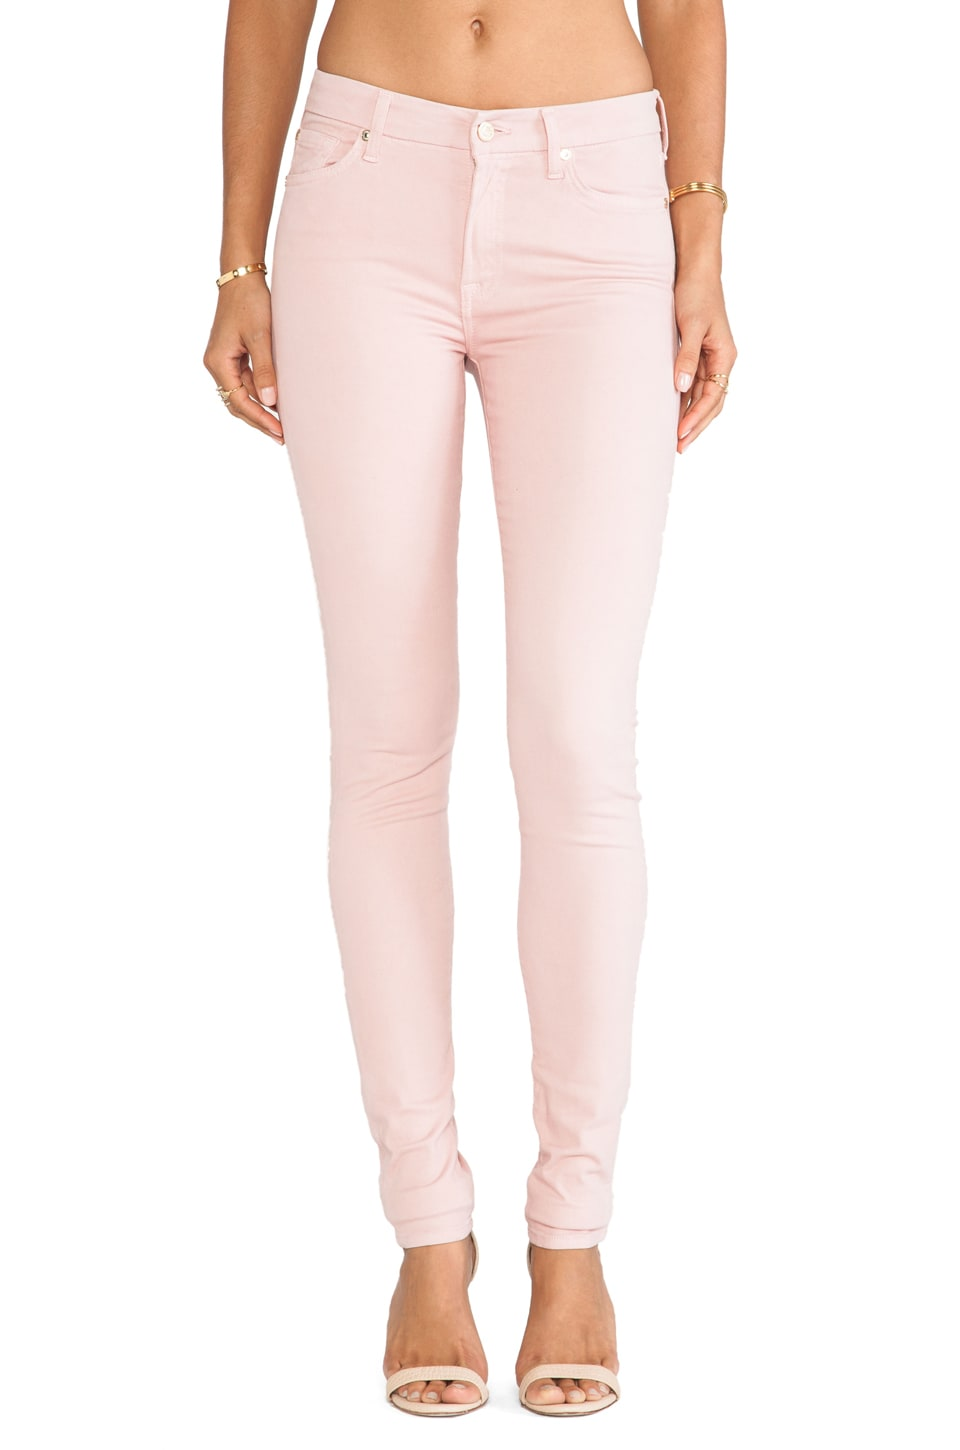 7 For All Mankind Contour Mid Rise Skinny in Blush Pink